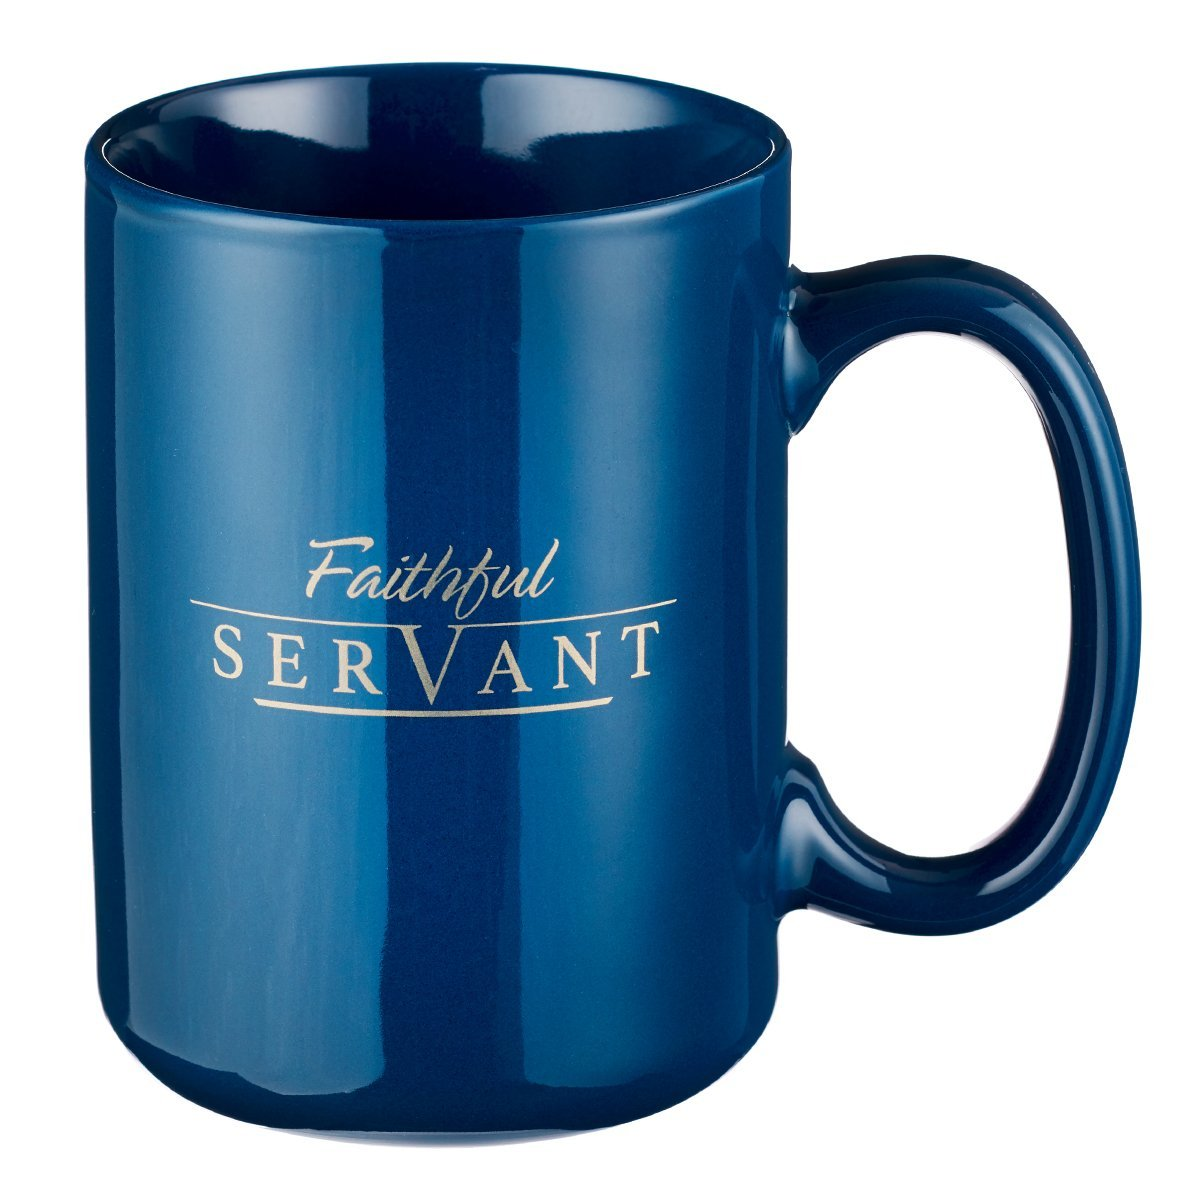 Mug - Be Strong Faithful Servant, Navy Blue by Christian Art Gifts